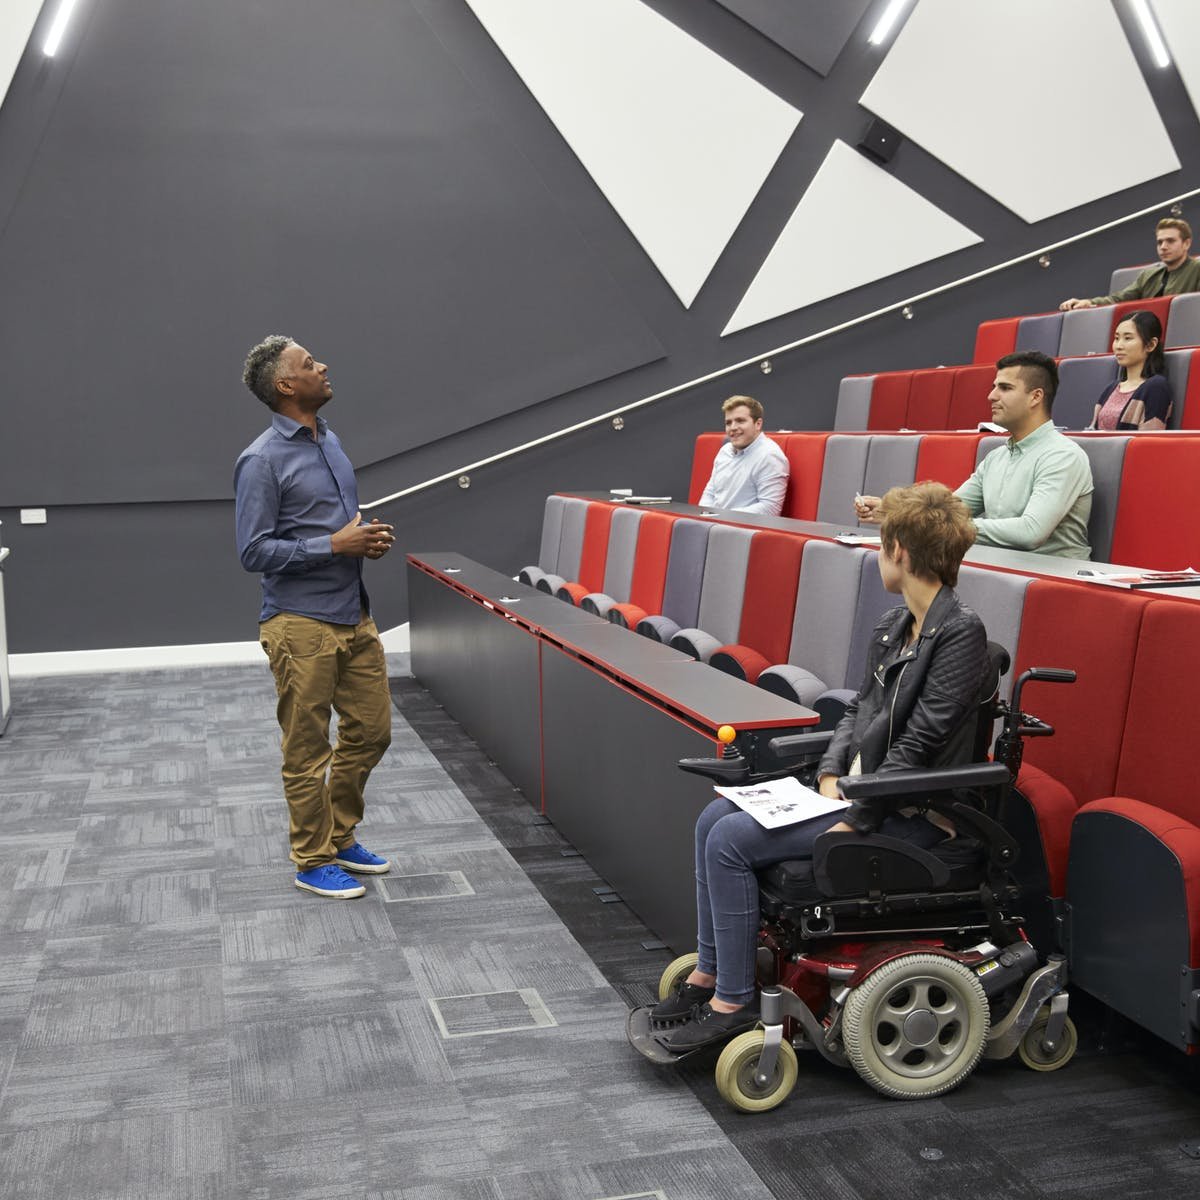 Lack Of College Disability Information >> College Students With Disabilities Are Too Often Excluded